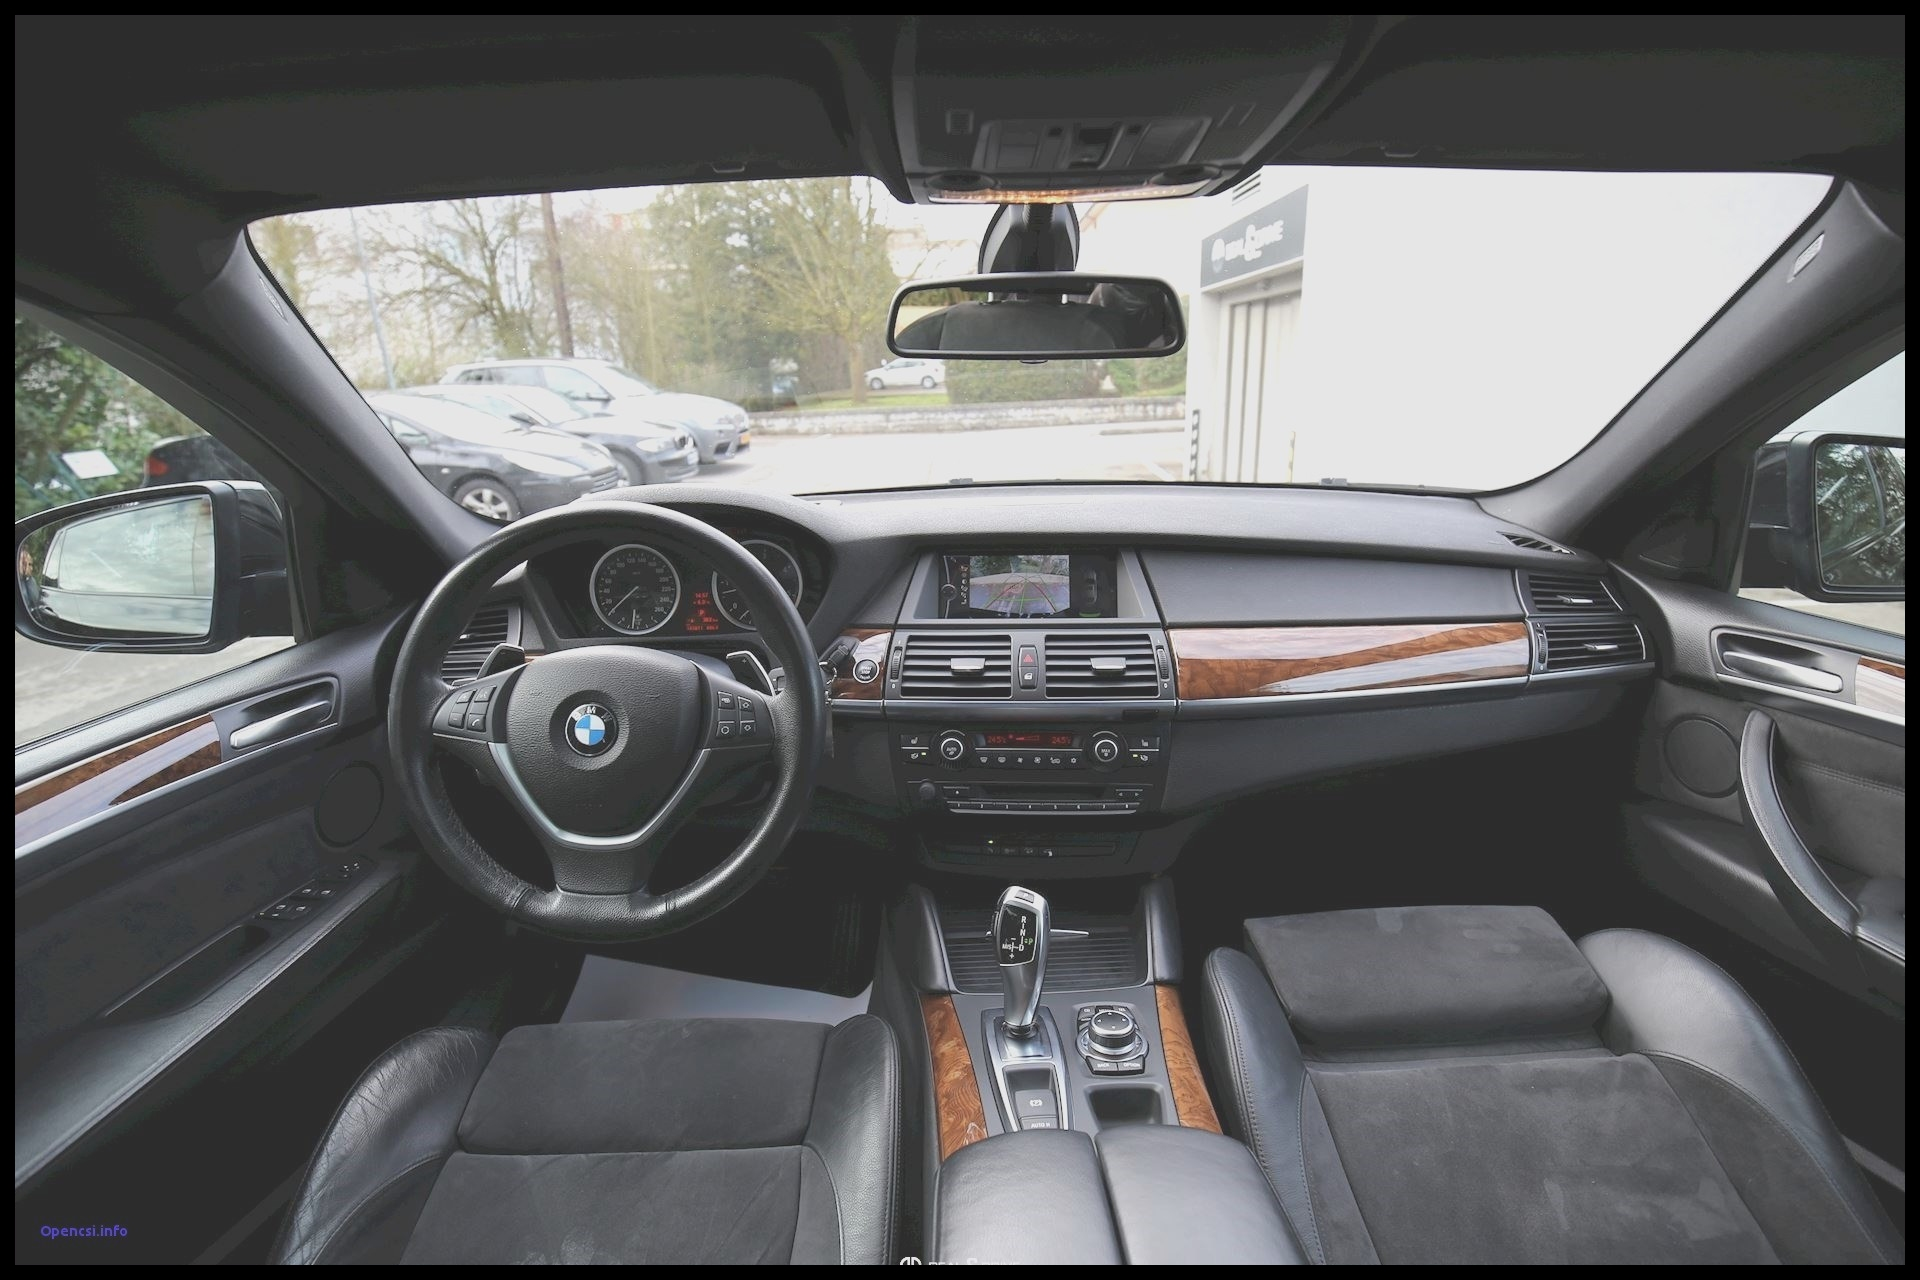 2018 Bmw Lease Specials Unique Bmw Lease Deals Lovely New Cars 0 Deals Inspirational Bmw X6